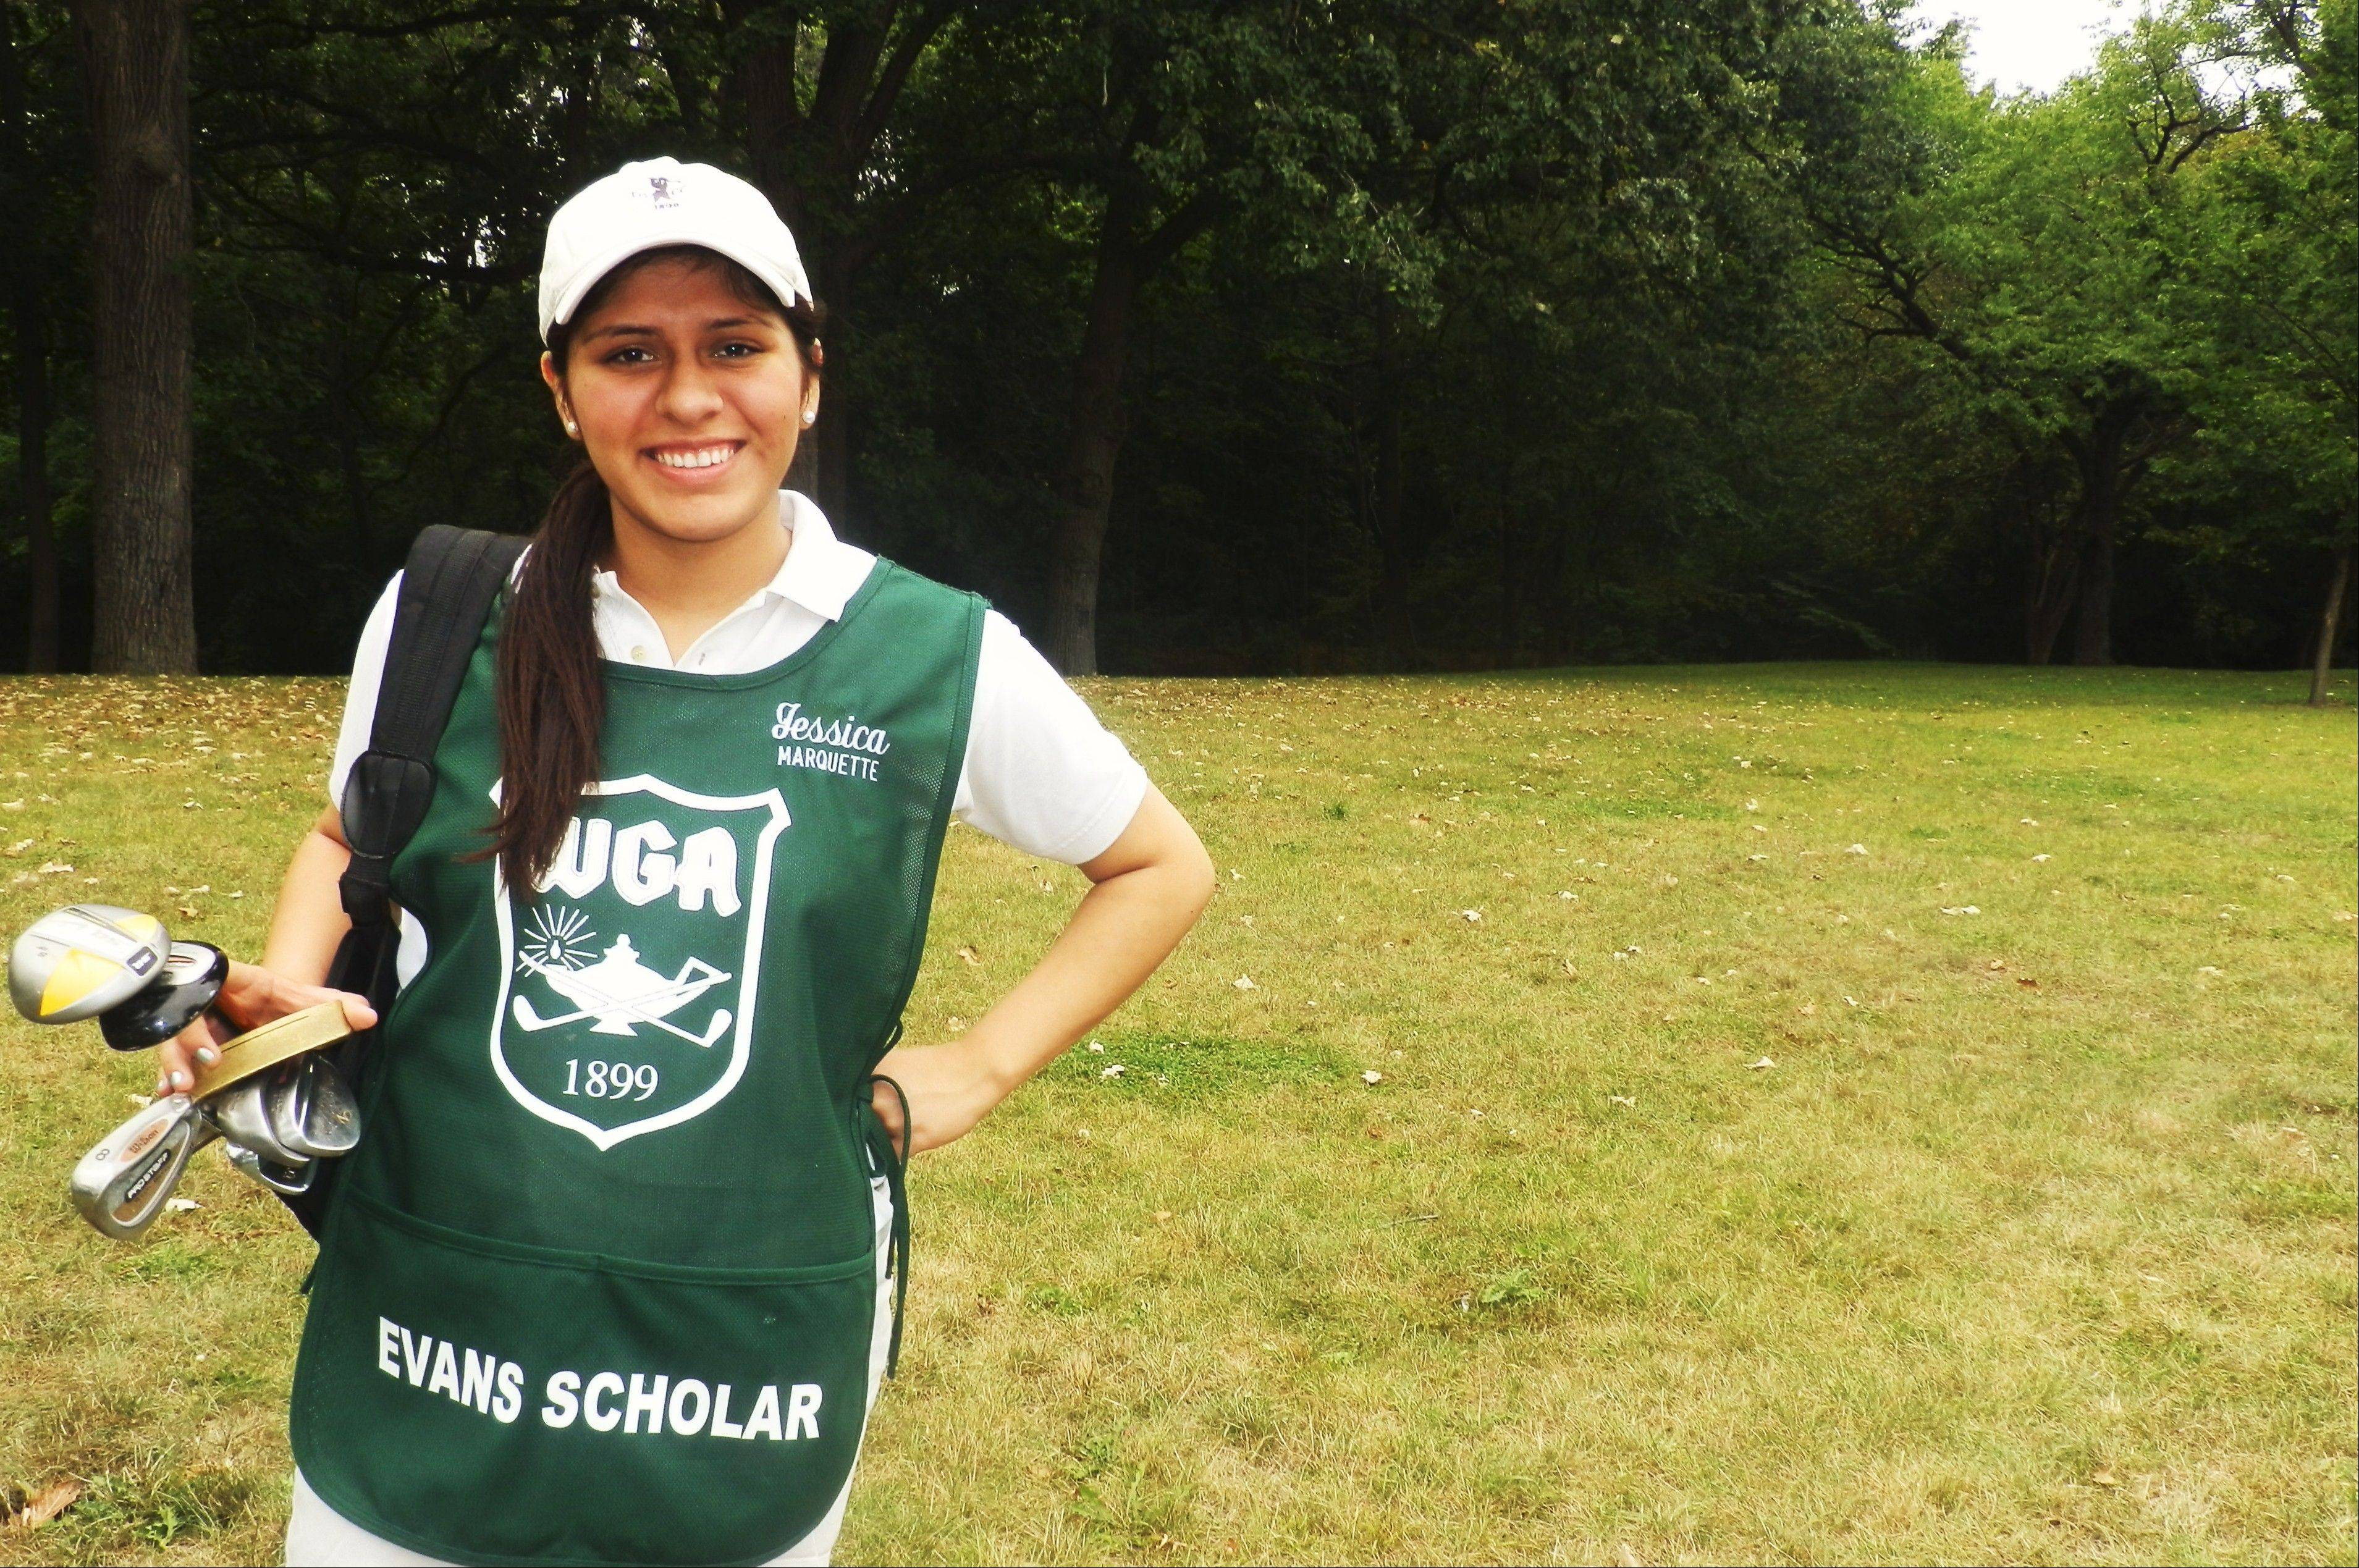 Jessica Ayala of Waukegan became the first in her family to attend a four-year university after she won a Chick Evans Scholarship. The ongoing BMW Championship in Lake Forest is a major fundraiser for the scholarship program.